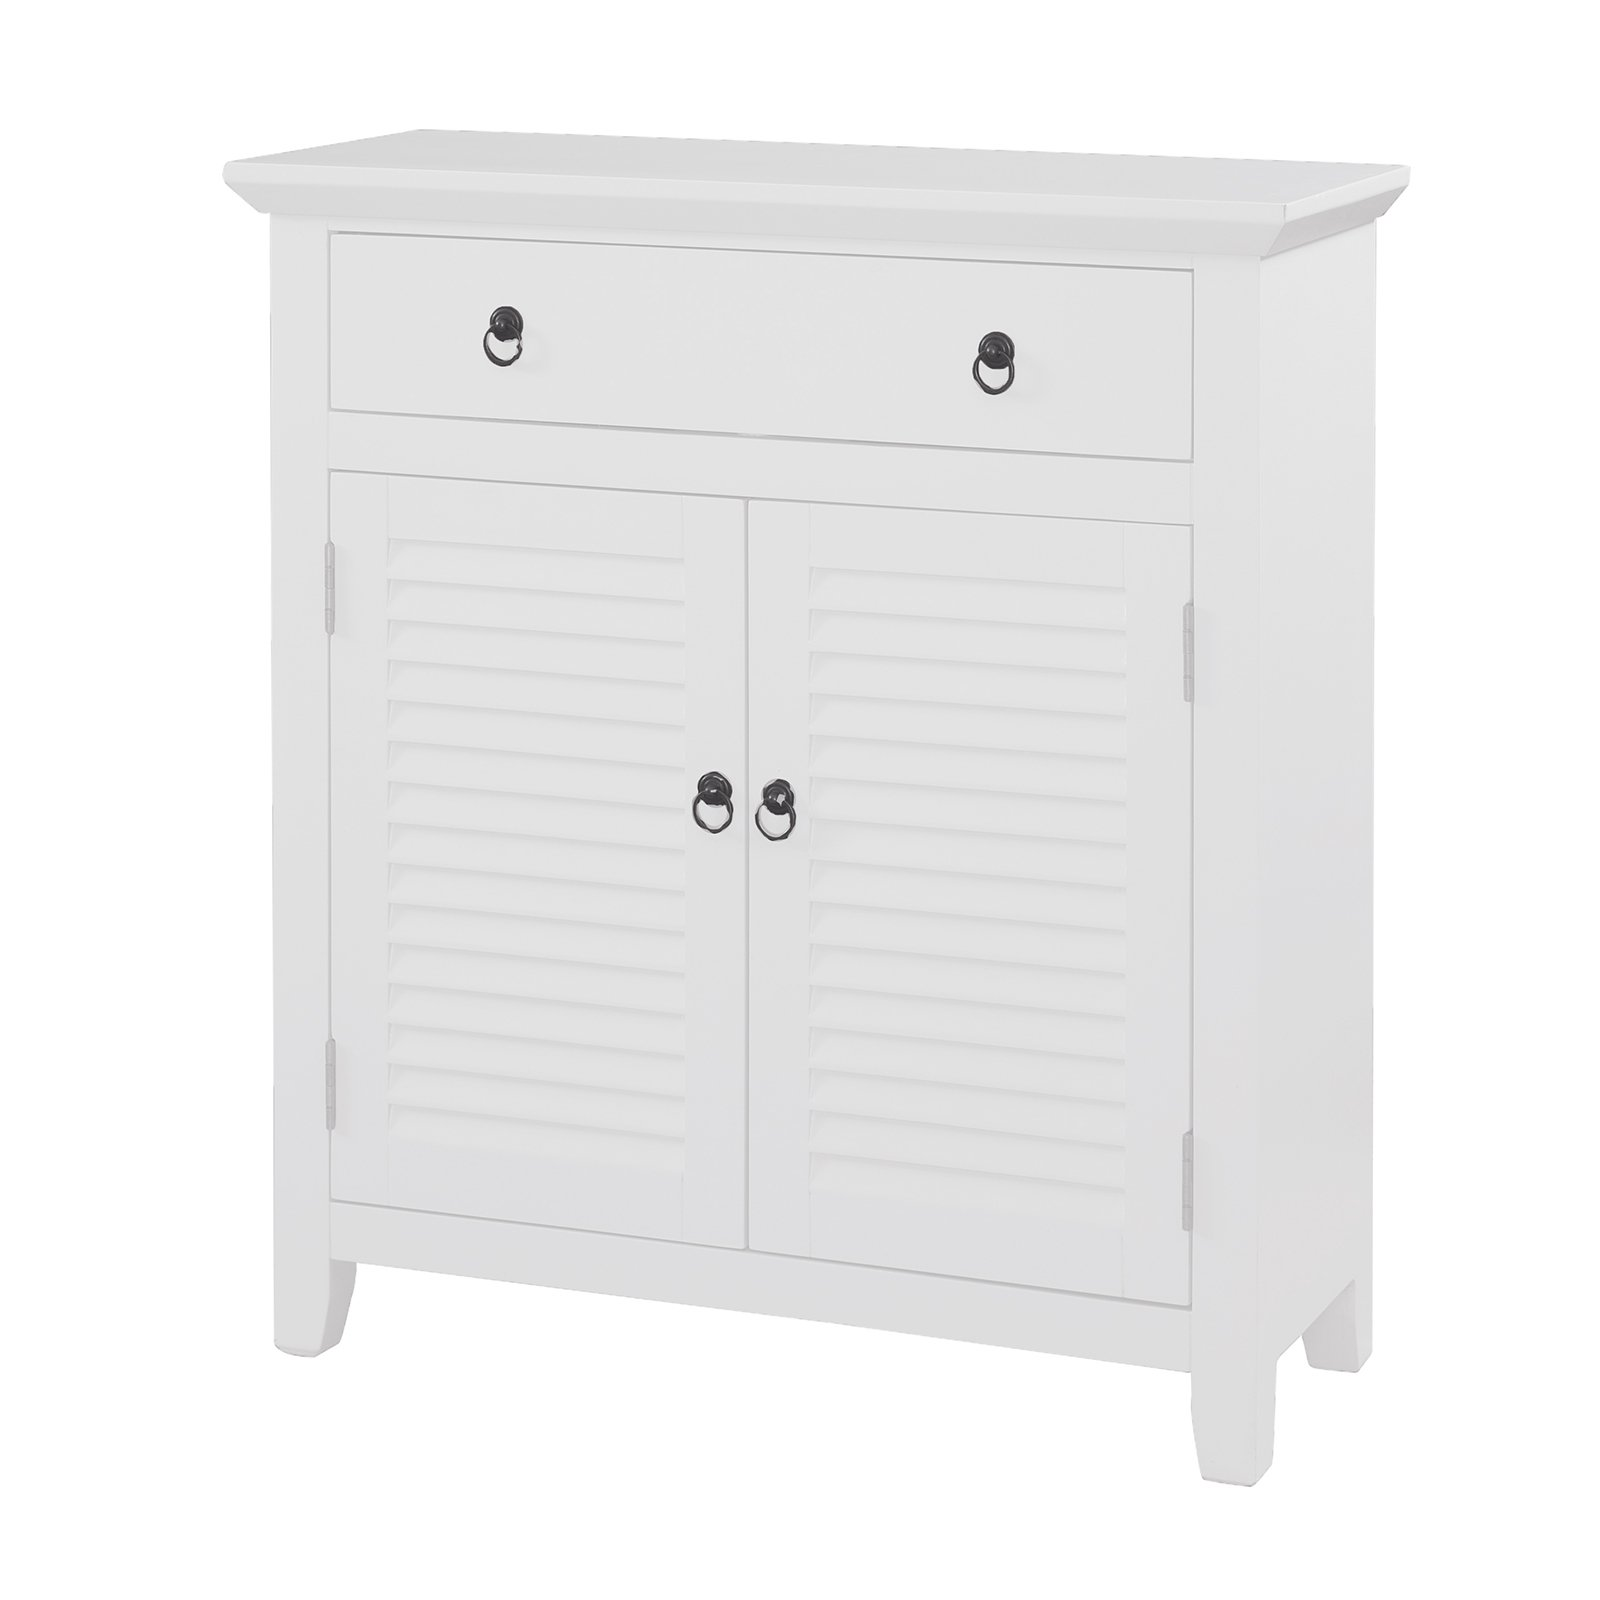 Superbe Powell Shutter Door Console Cabinet, White